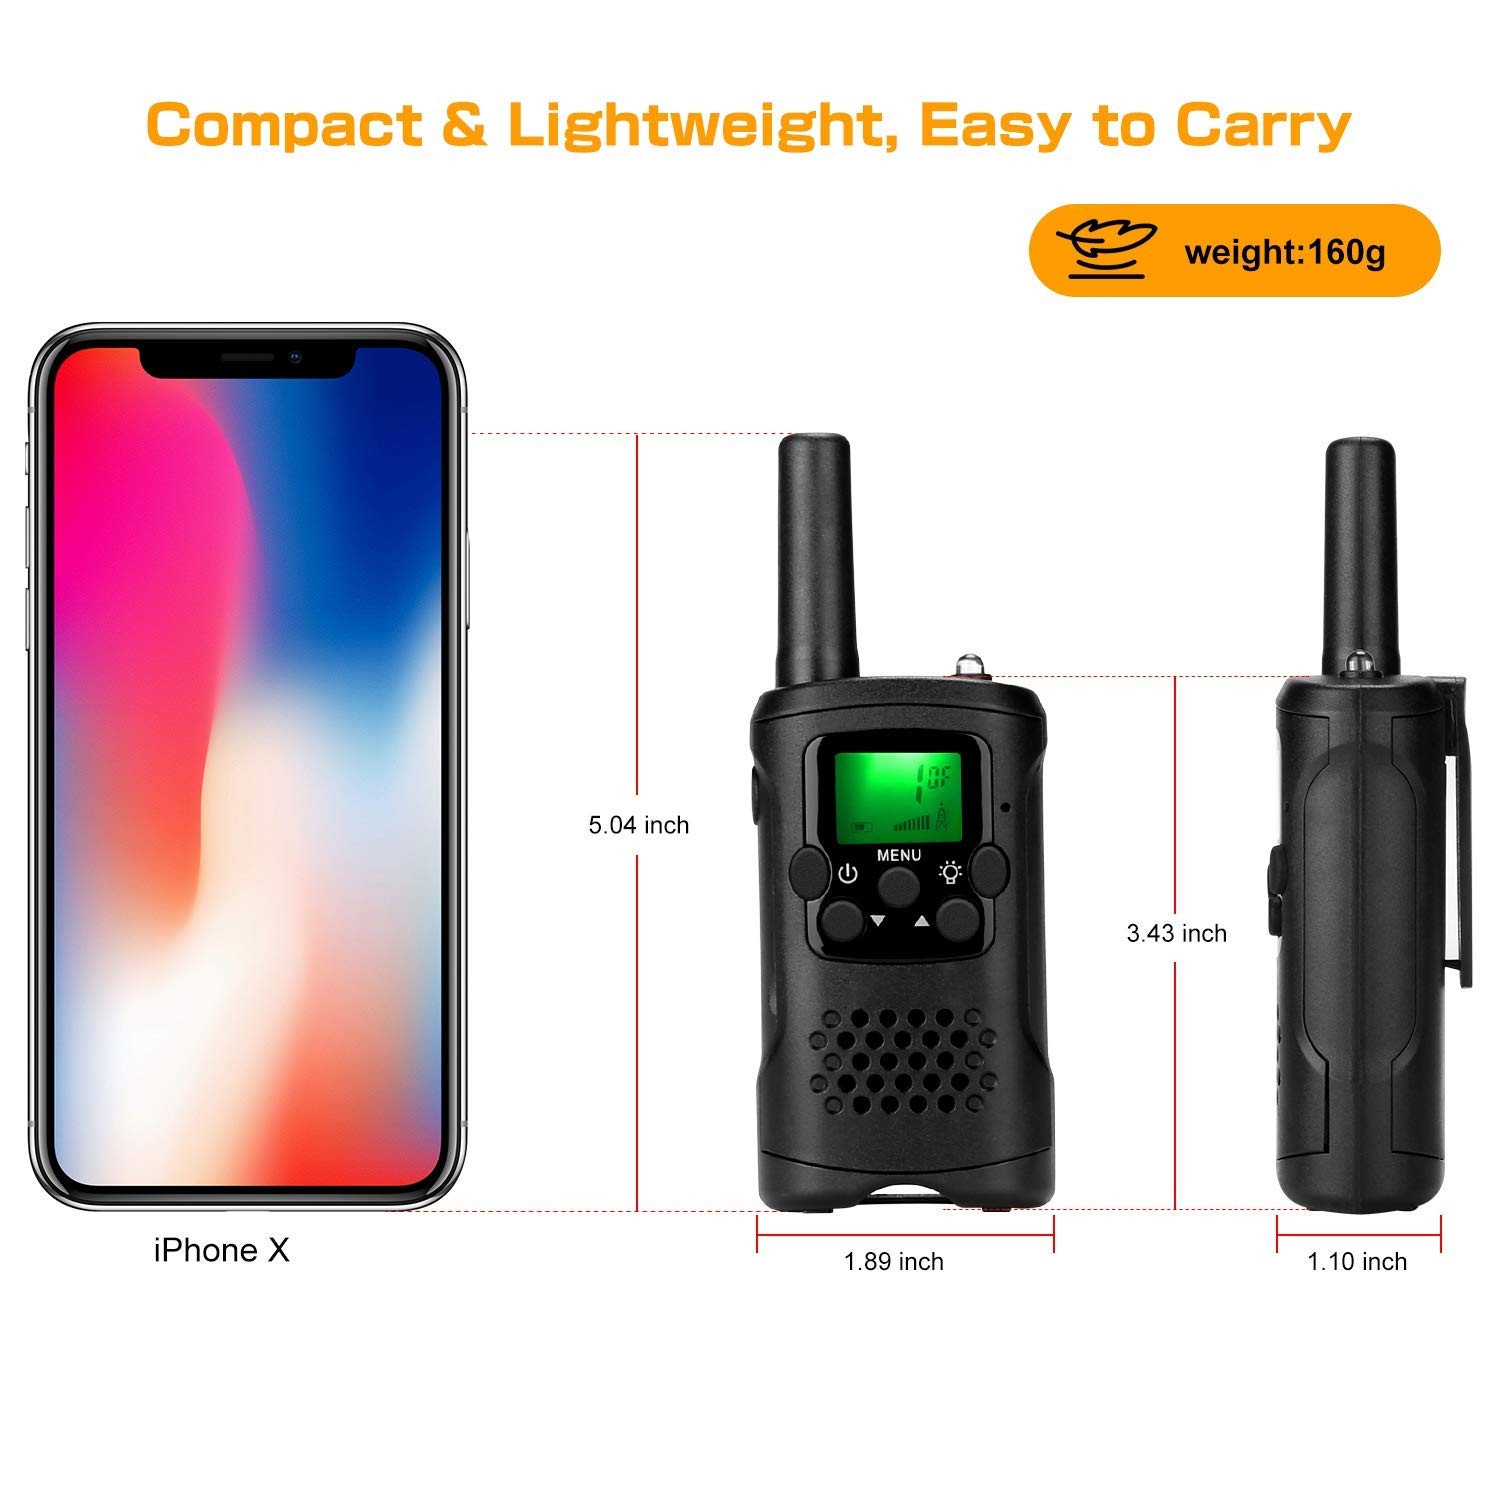 Kids Walkie Talkies with Whistles and Lanyards, Two Way Radio Long Range Walkie Talky Toy with Flashlight for Boys Girls by VERDUO (Image #2)